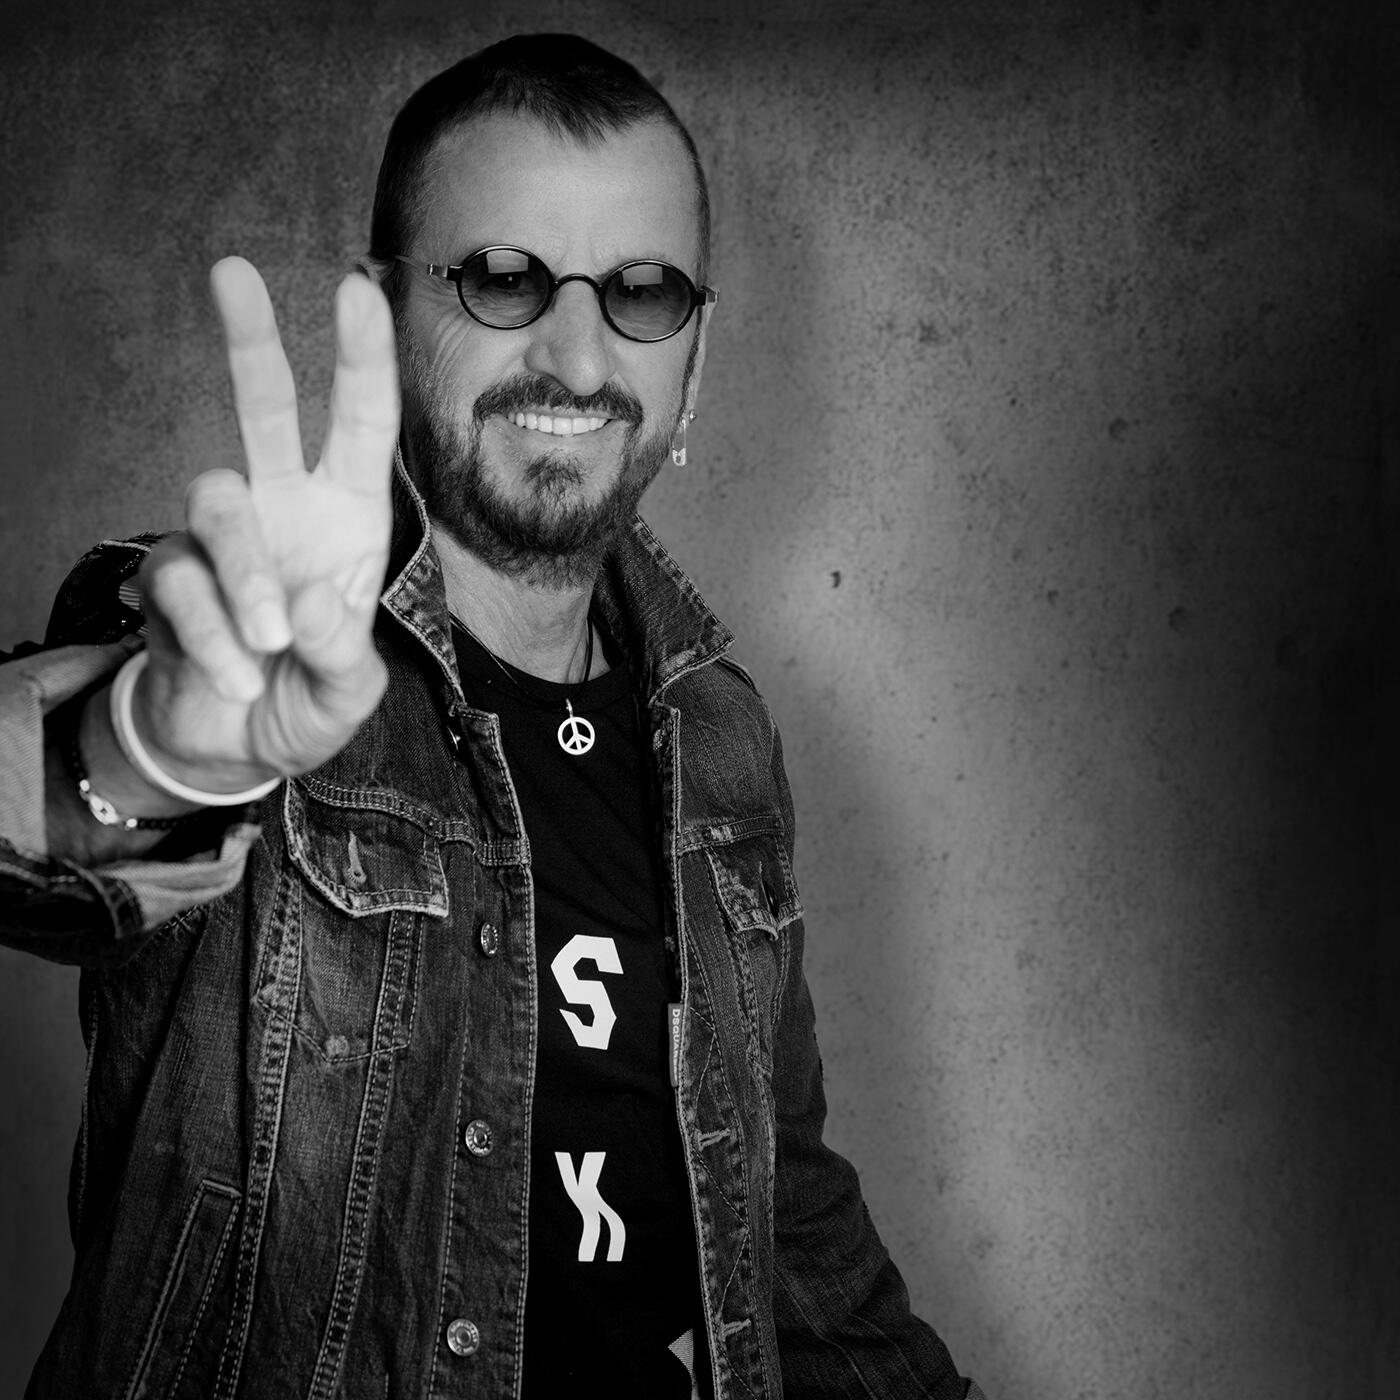 ringo starr radio listen to free music get the latest info iheartradio. Black Bedroom Furniture Sets. Home Design Ideas